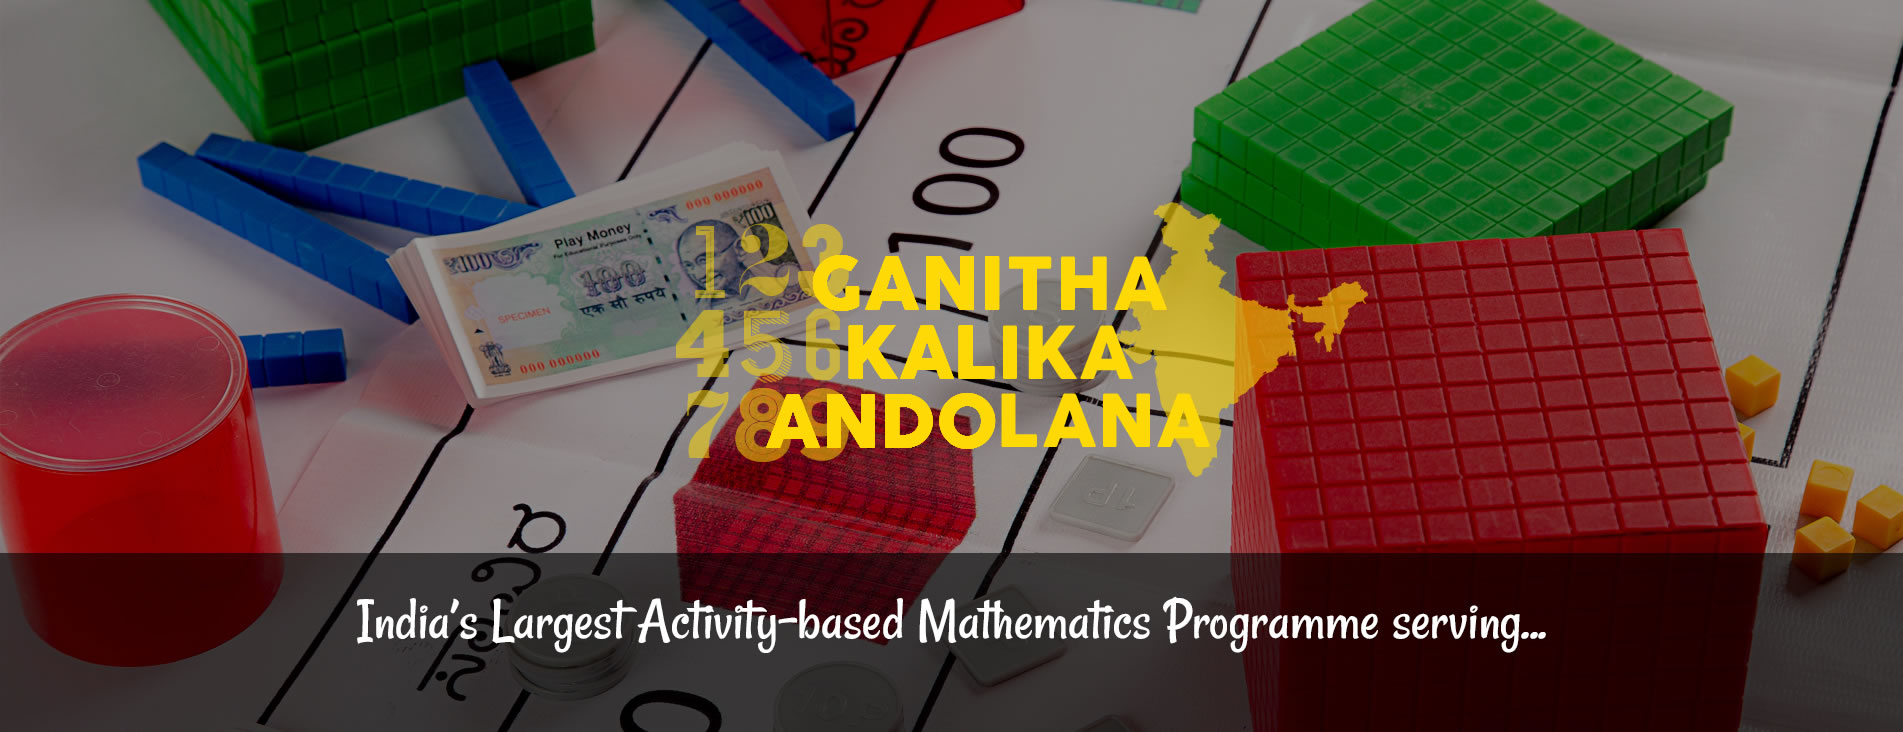 India's Largest Activity-based Mathematics Programme serving...